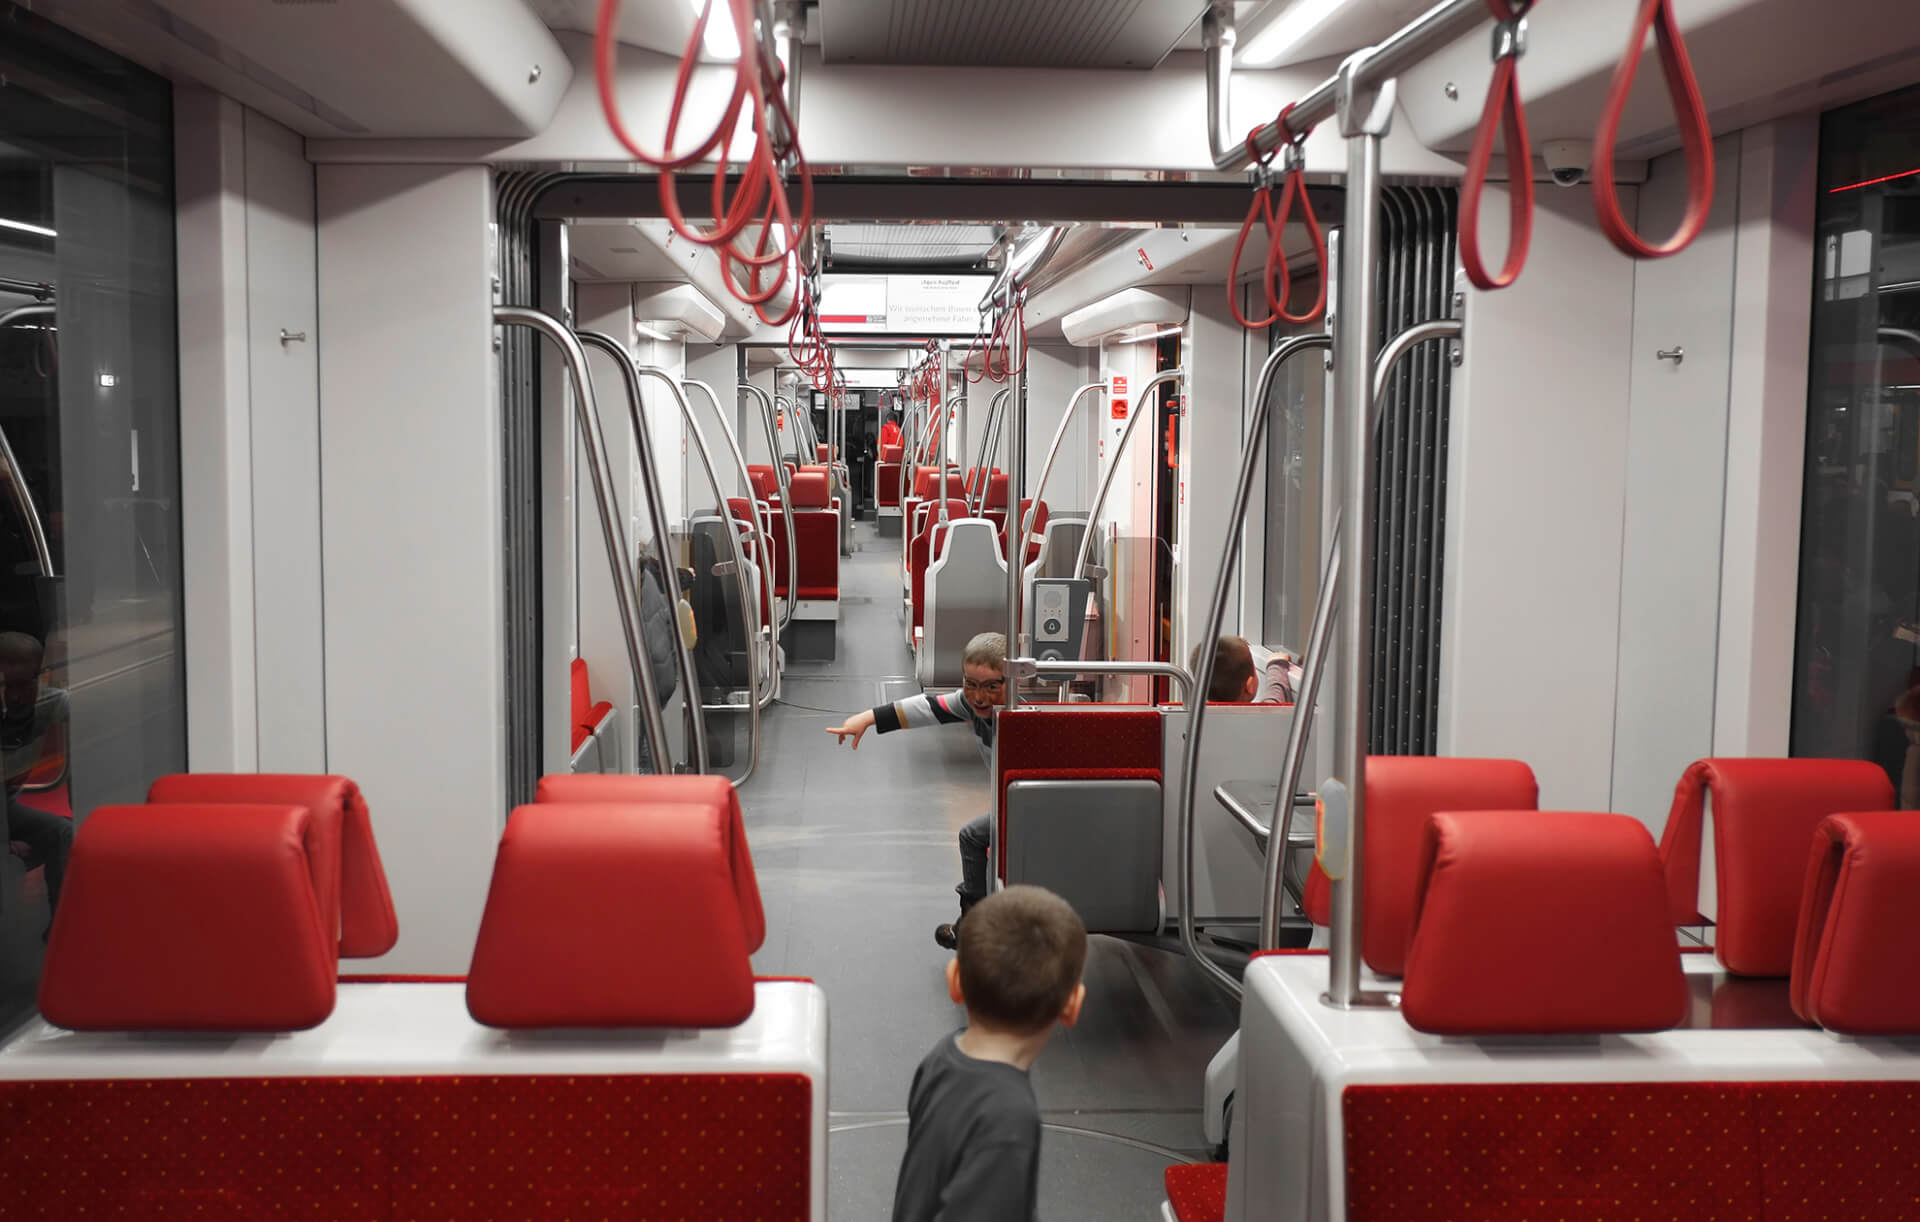 Industrial Design & Transportation Design - Döllmann Design + Architektur, Strassenbahn Gmunden, Stadler StadtRegioTram, Industrial Design, Transportation Design, Interior of a brand new tram